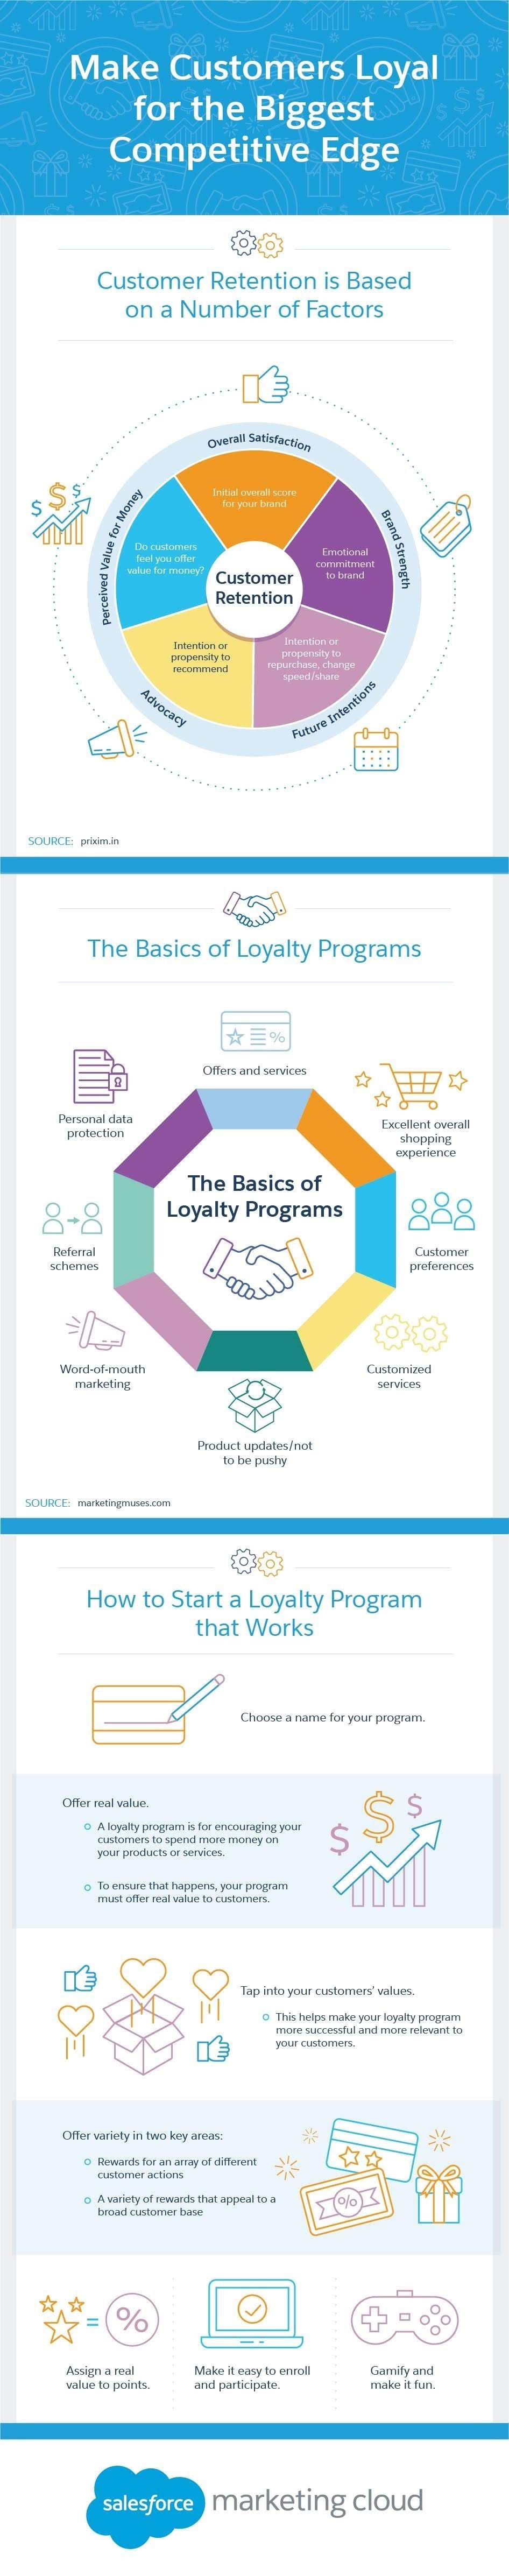 Make Customers Loyal for the Biggest Competitive Edge